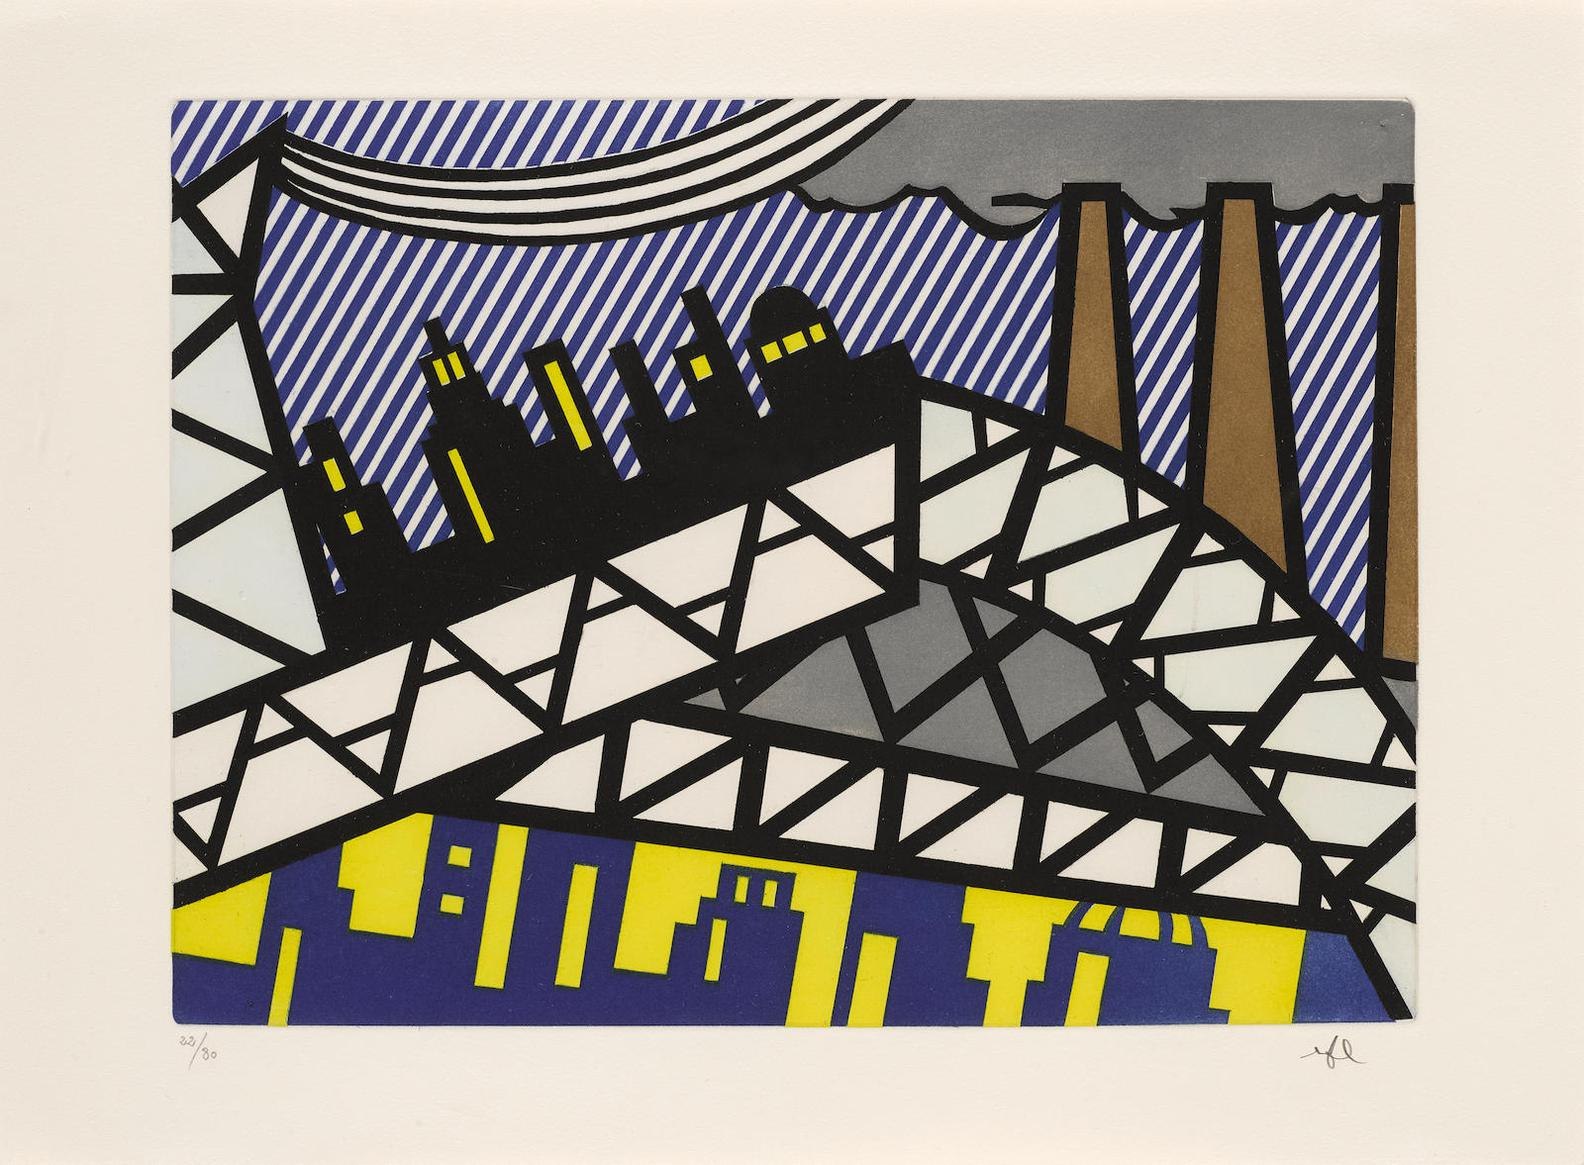 Roy Lichtenstein-Illustration For Bayonne En Entrant Dans Nyc, From La Nouvelle Chute De Lamerique (Corlett 269)-1992